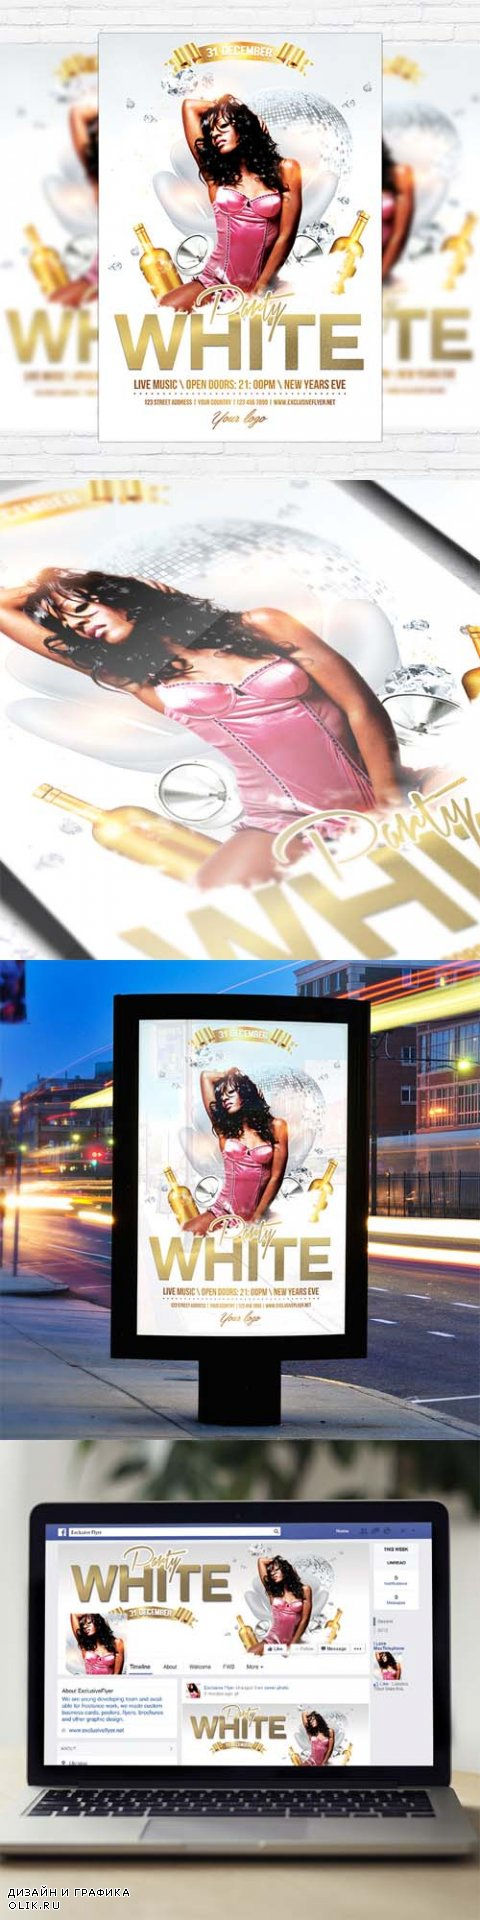 Flyer Template - White Party + Facebook Cover